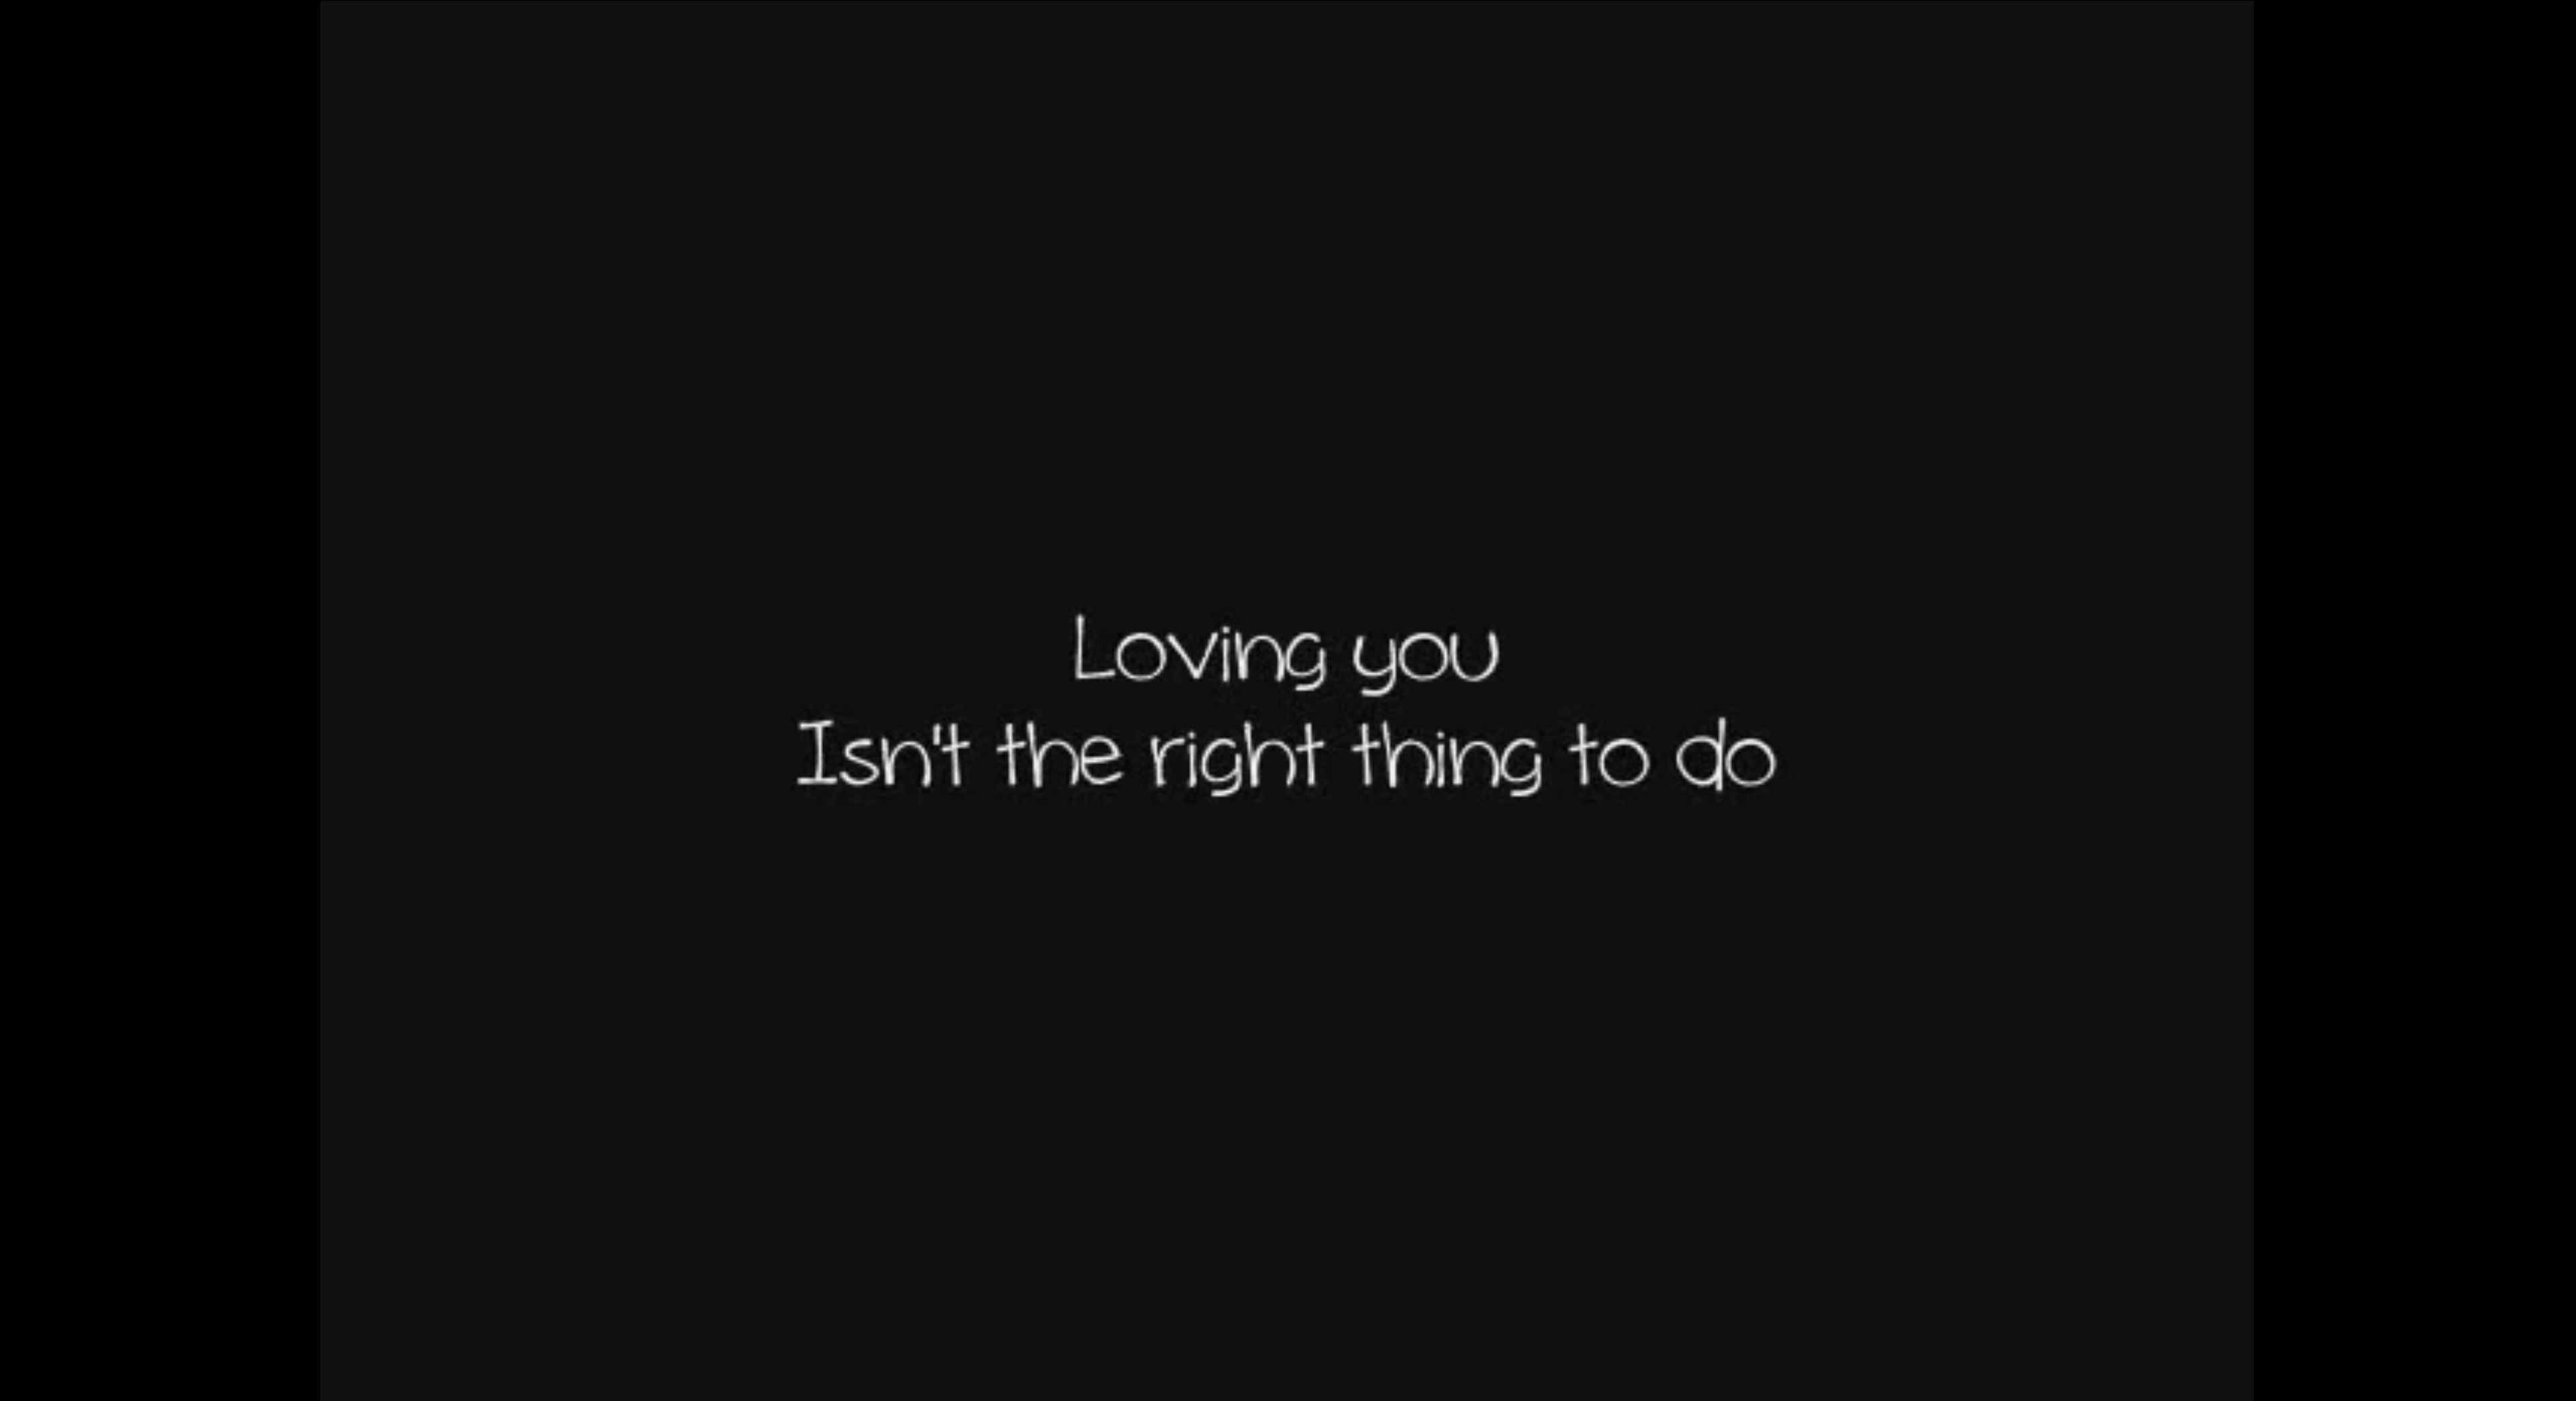 Loving you isn't the right thing to do